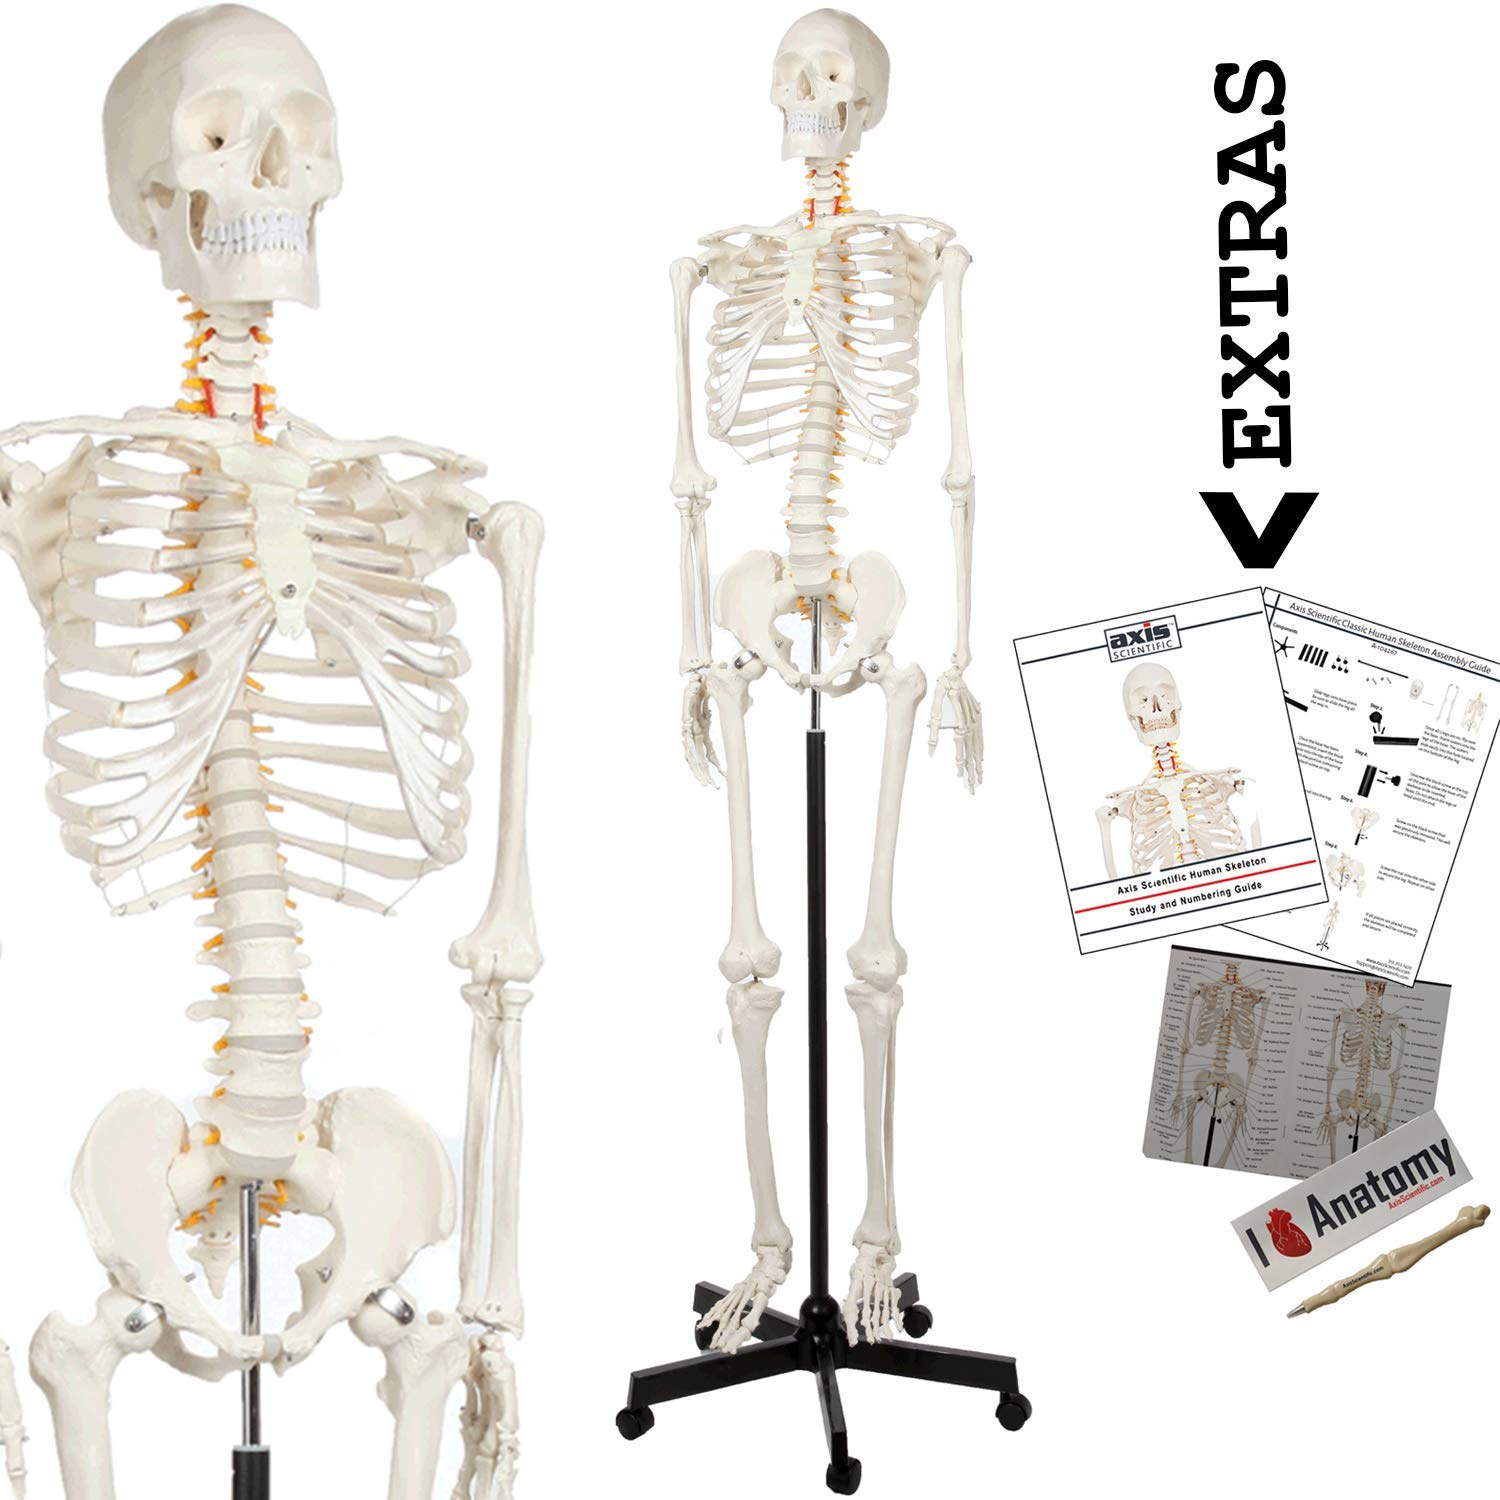 dae9cb6f361 Axis Scientific Human Skeleton Anatomy Model, 5' 6